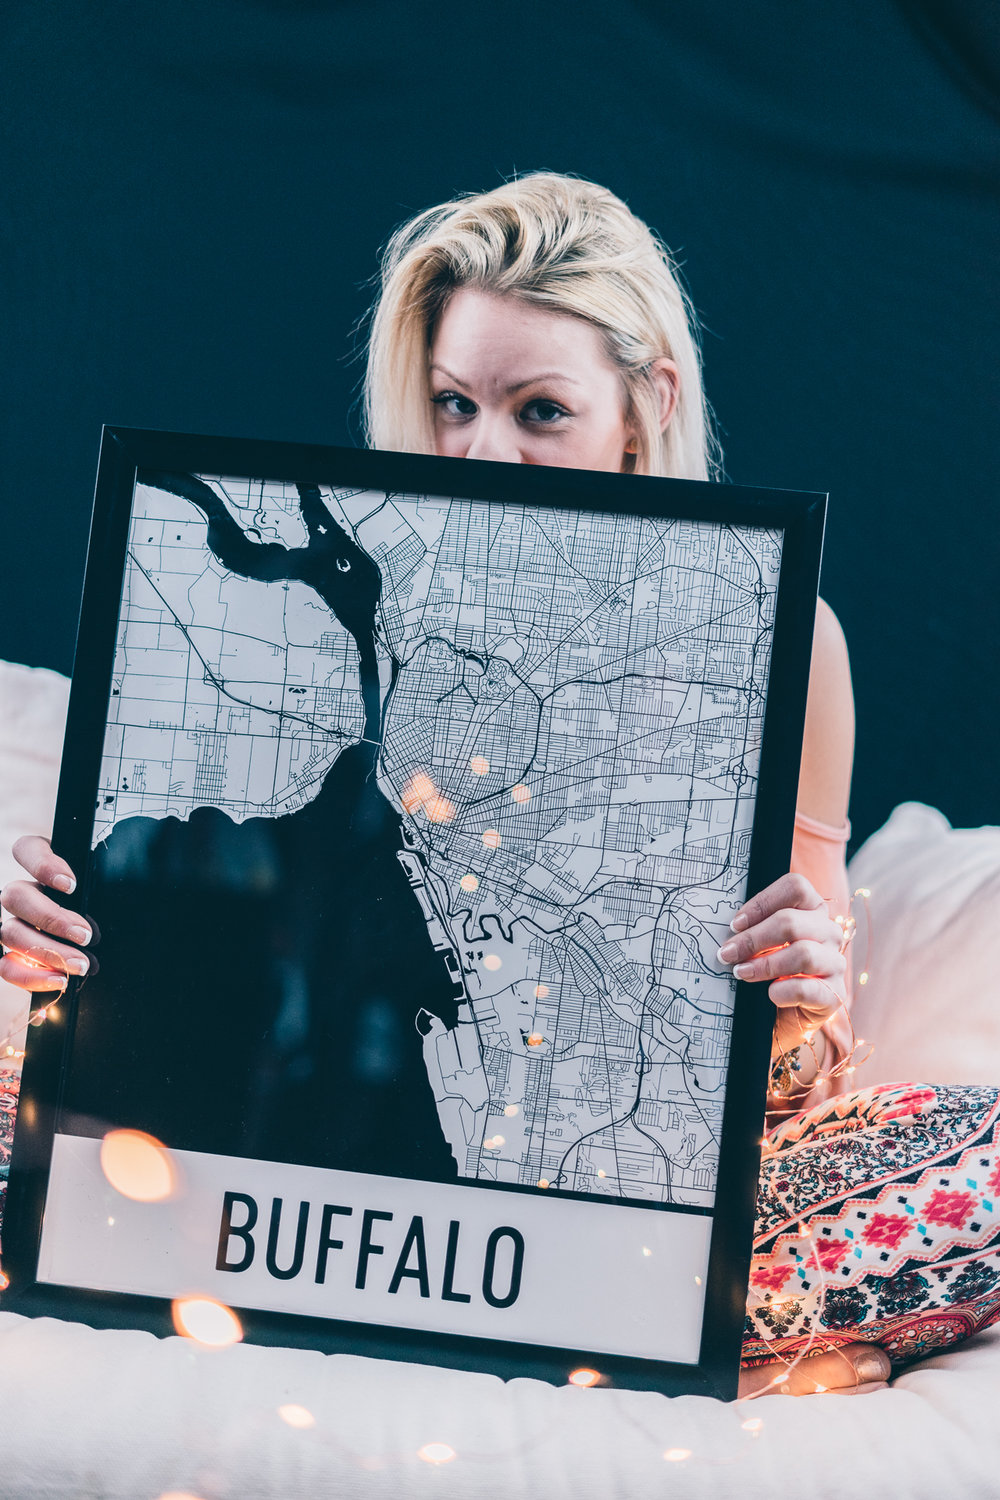 map of buffalo, maps of buffalo, buffalo art print, black and white city print, indie twenty, queen city map, queen city gypsy, fashion blog, buffalo blogger, buffalo fashion blogger, buffalo lifestyle blogger, seek axiom photography, rachel sweeney, modern map art, twinkle lights photography